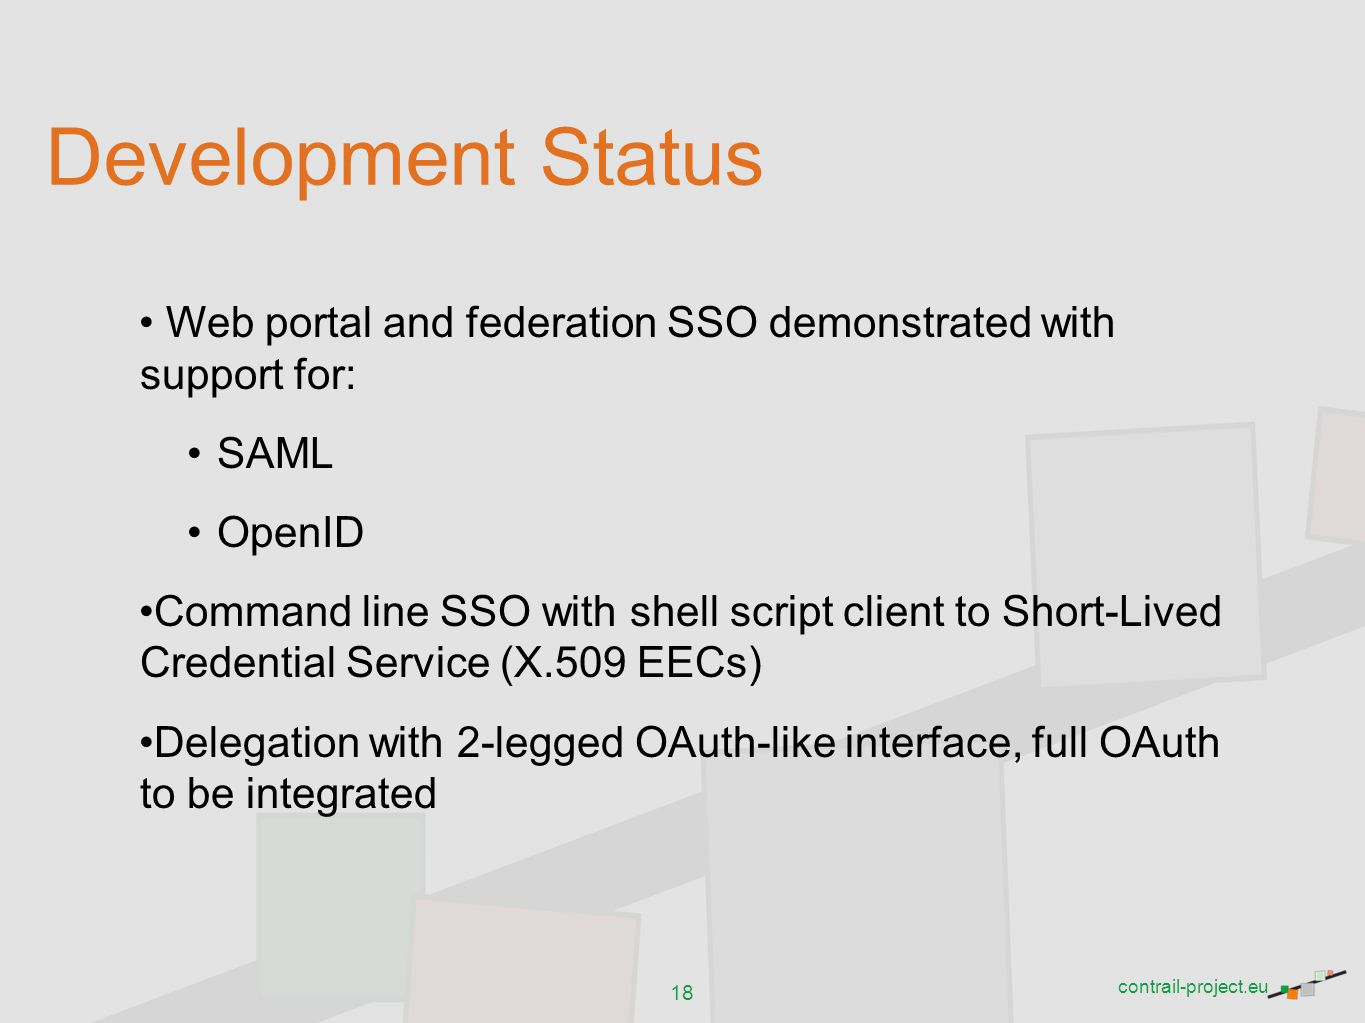 03/06/12 Development Status. Web portal and federation SSO demonstrated with support for: SAML. OpenID.